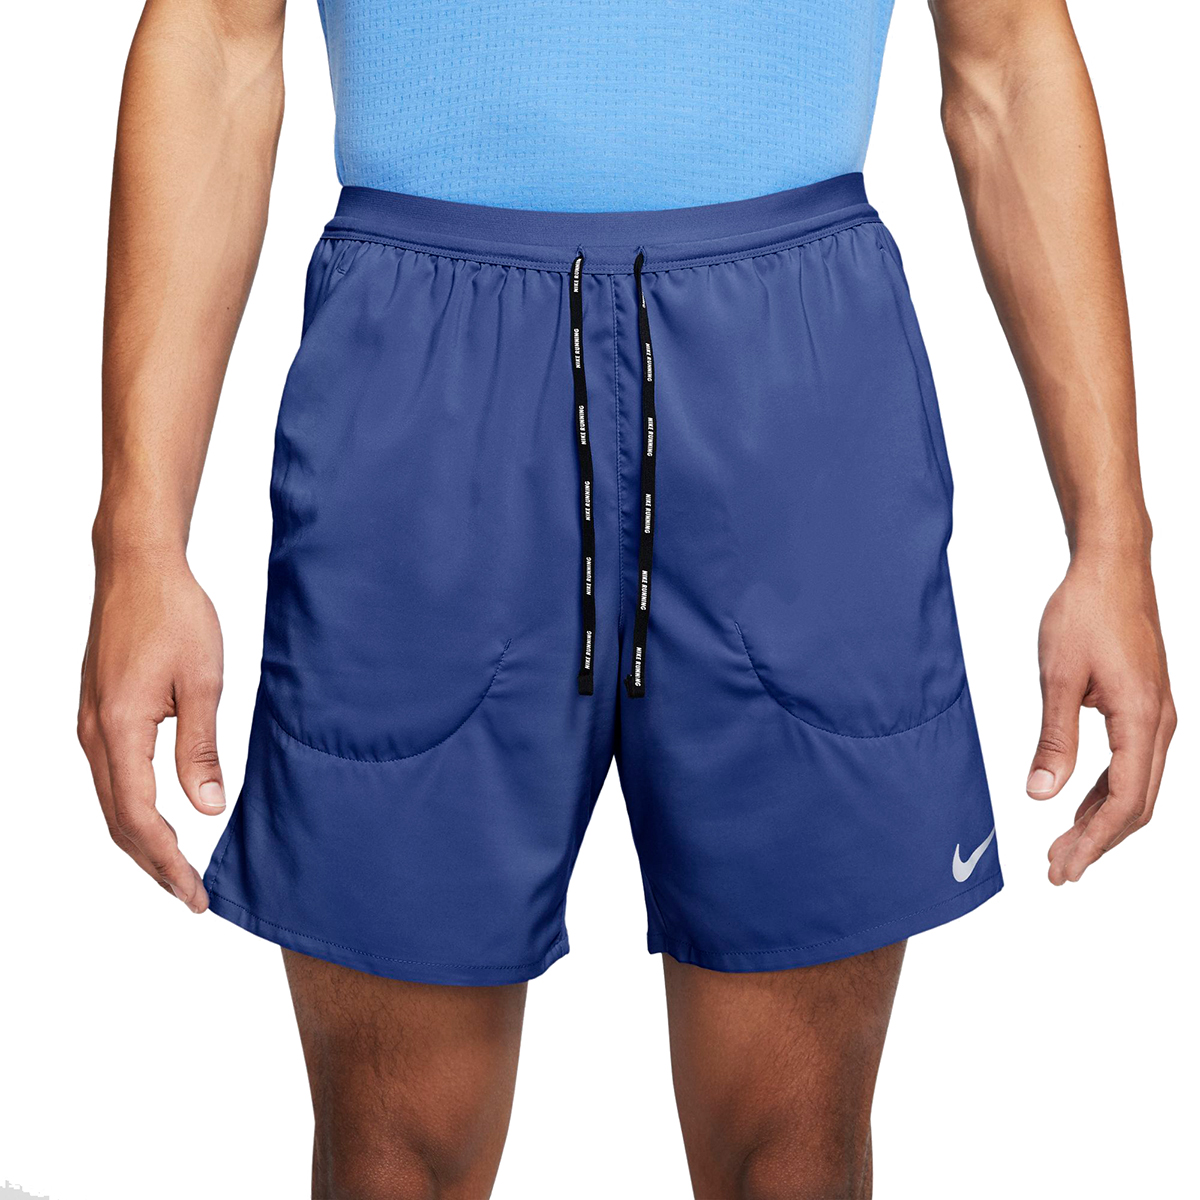 """Men's Nike Flex Stride 7"""" 2-In-1 Running Shorts - Color: Astronomy Blue/Royal Pulse - Size: M, Astronomy Blue/Royal Pulse, large, image 1"""